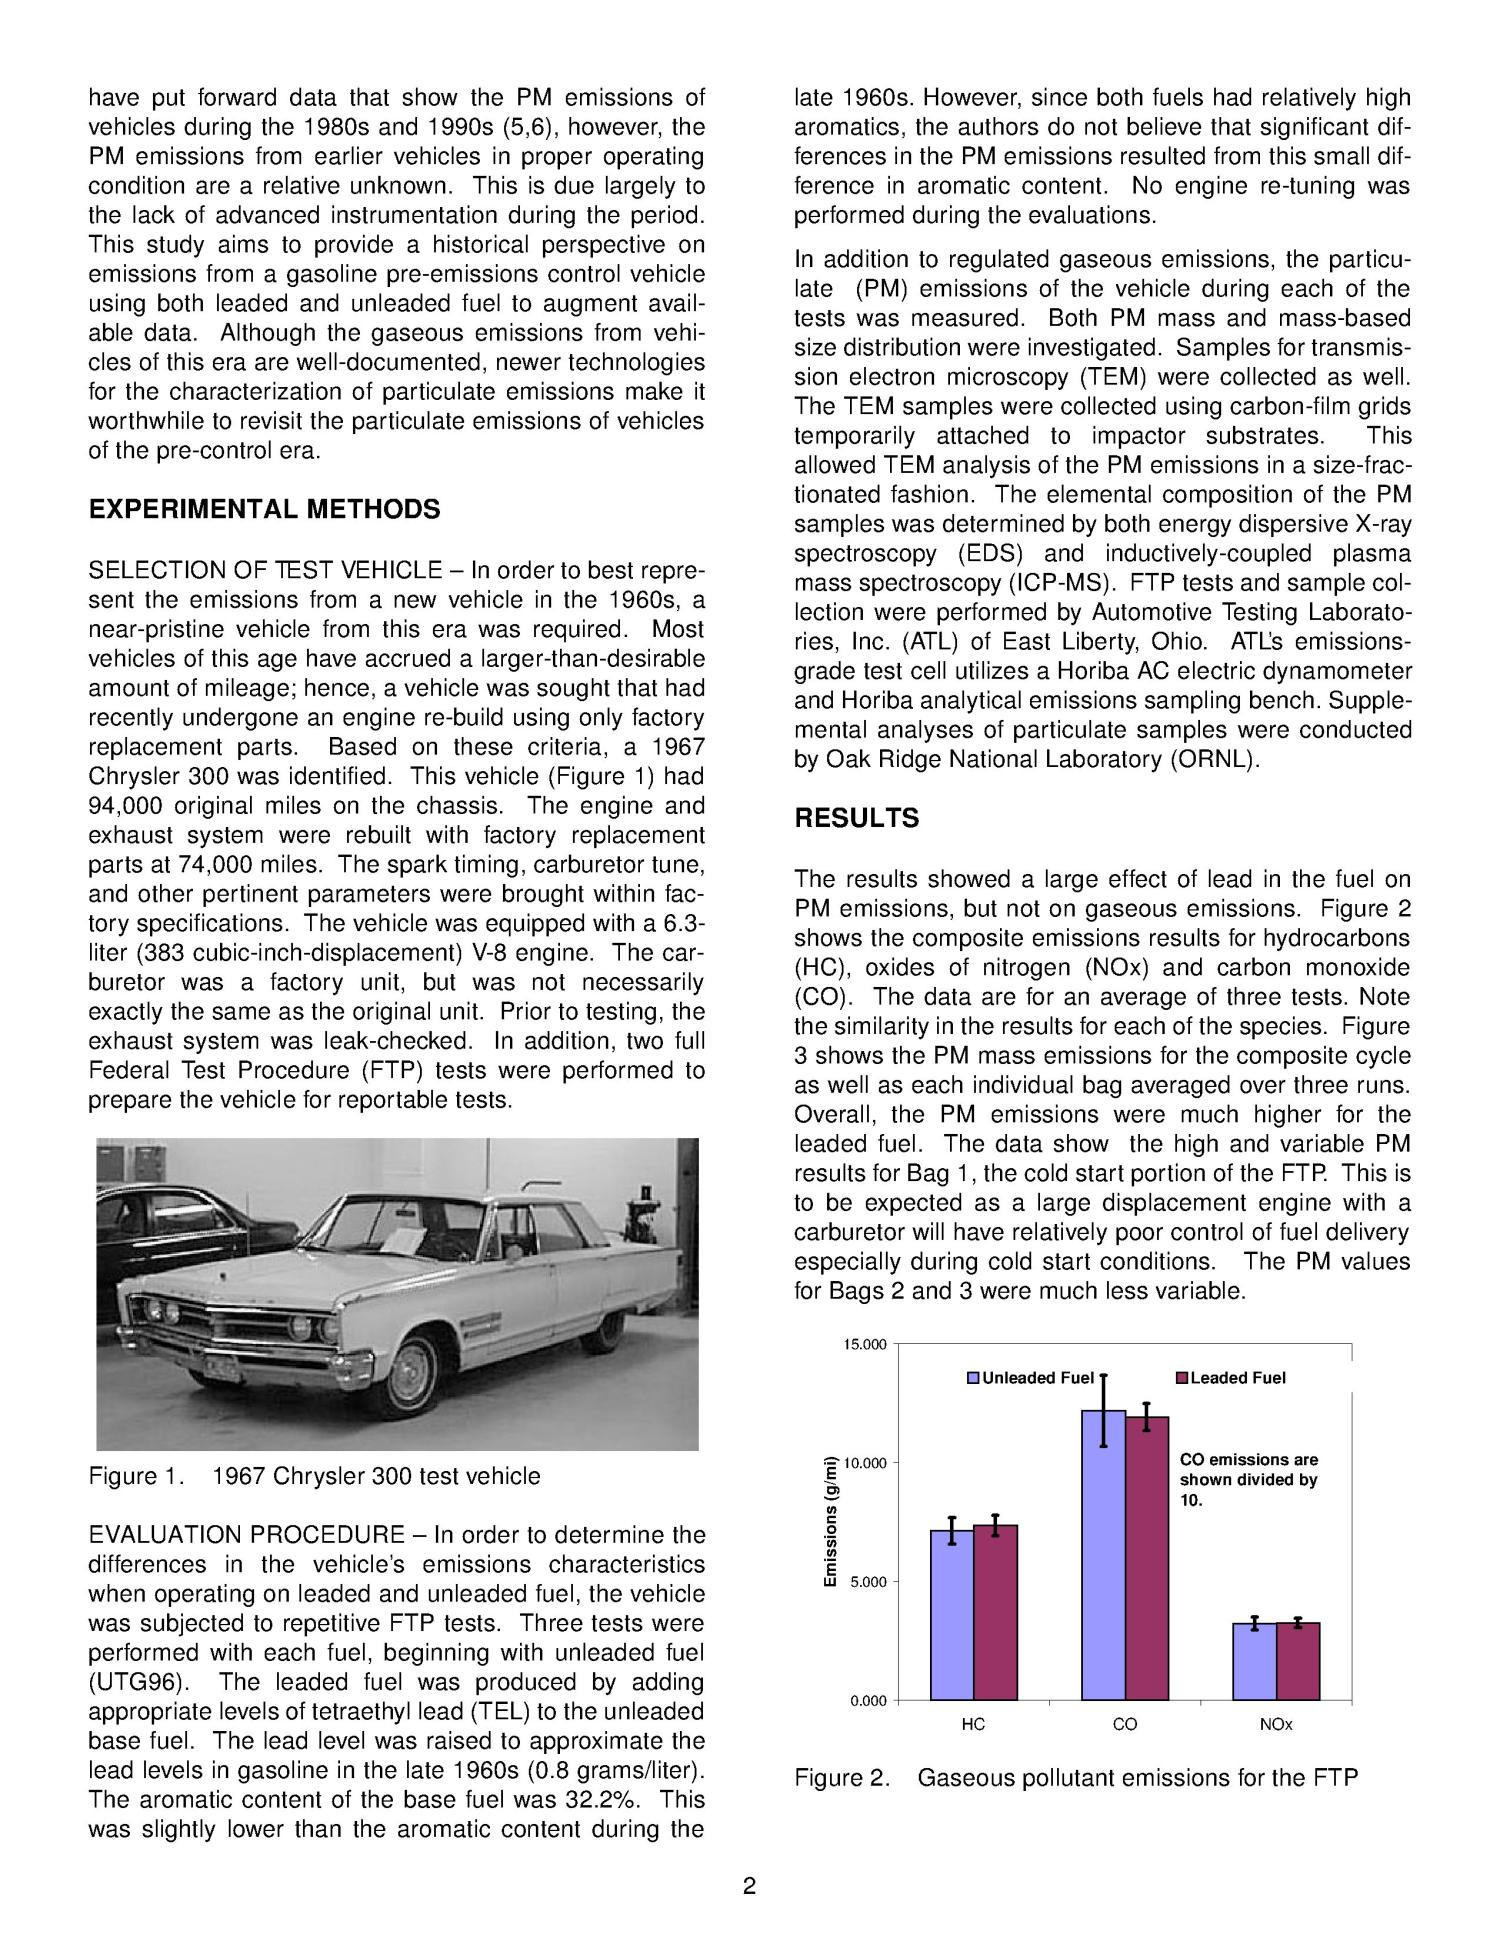 Particulate Emissions from a Pre-Emissions Control Era Spark-Ignition Vehicle: A Historical Benchmark                                                                                                      [Sequence #]: 4 of 7